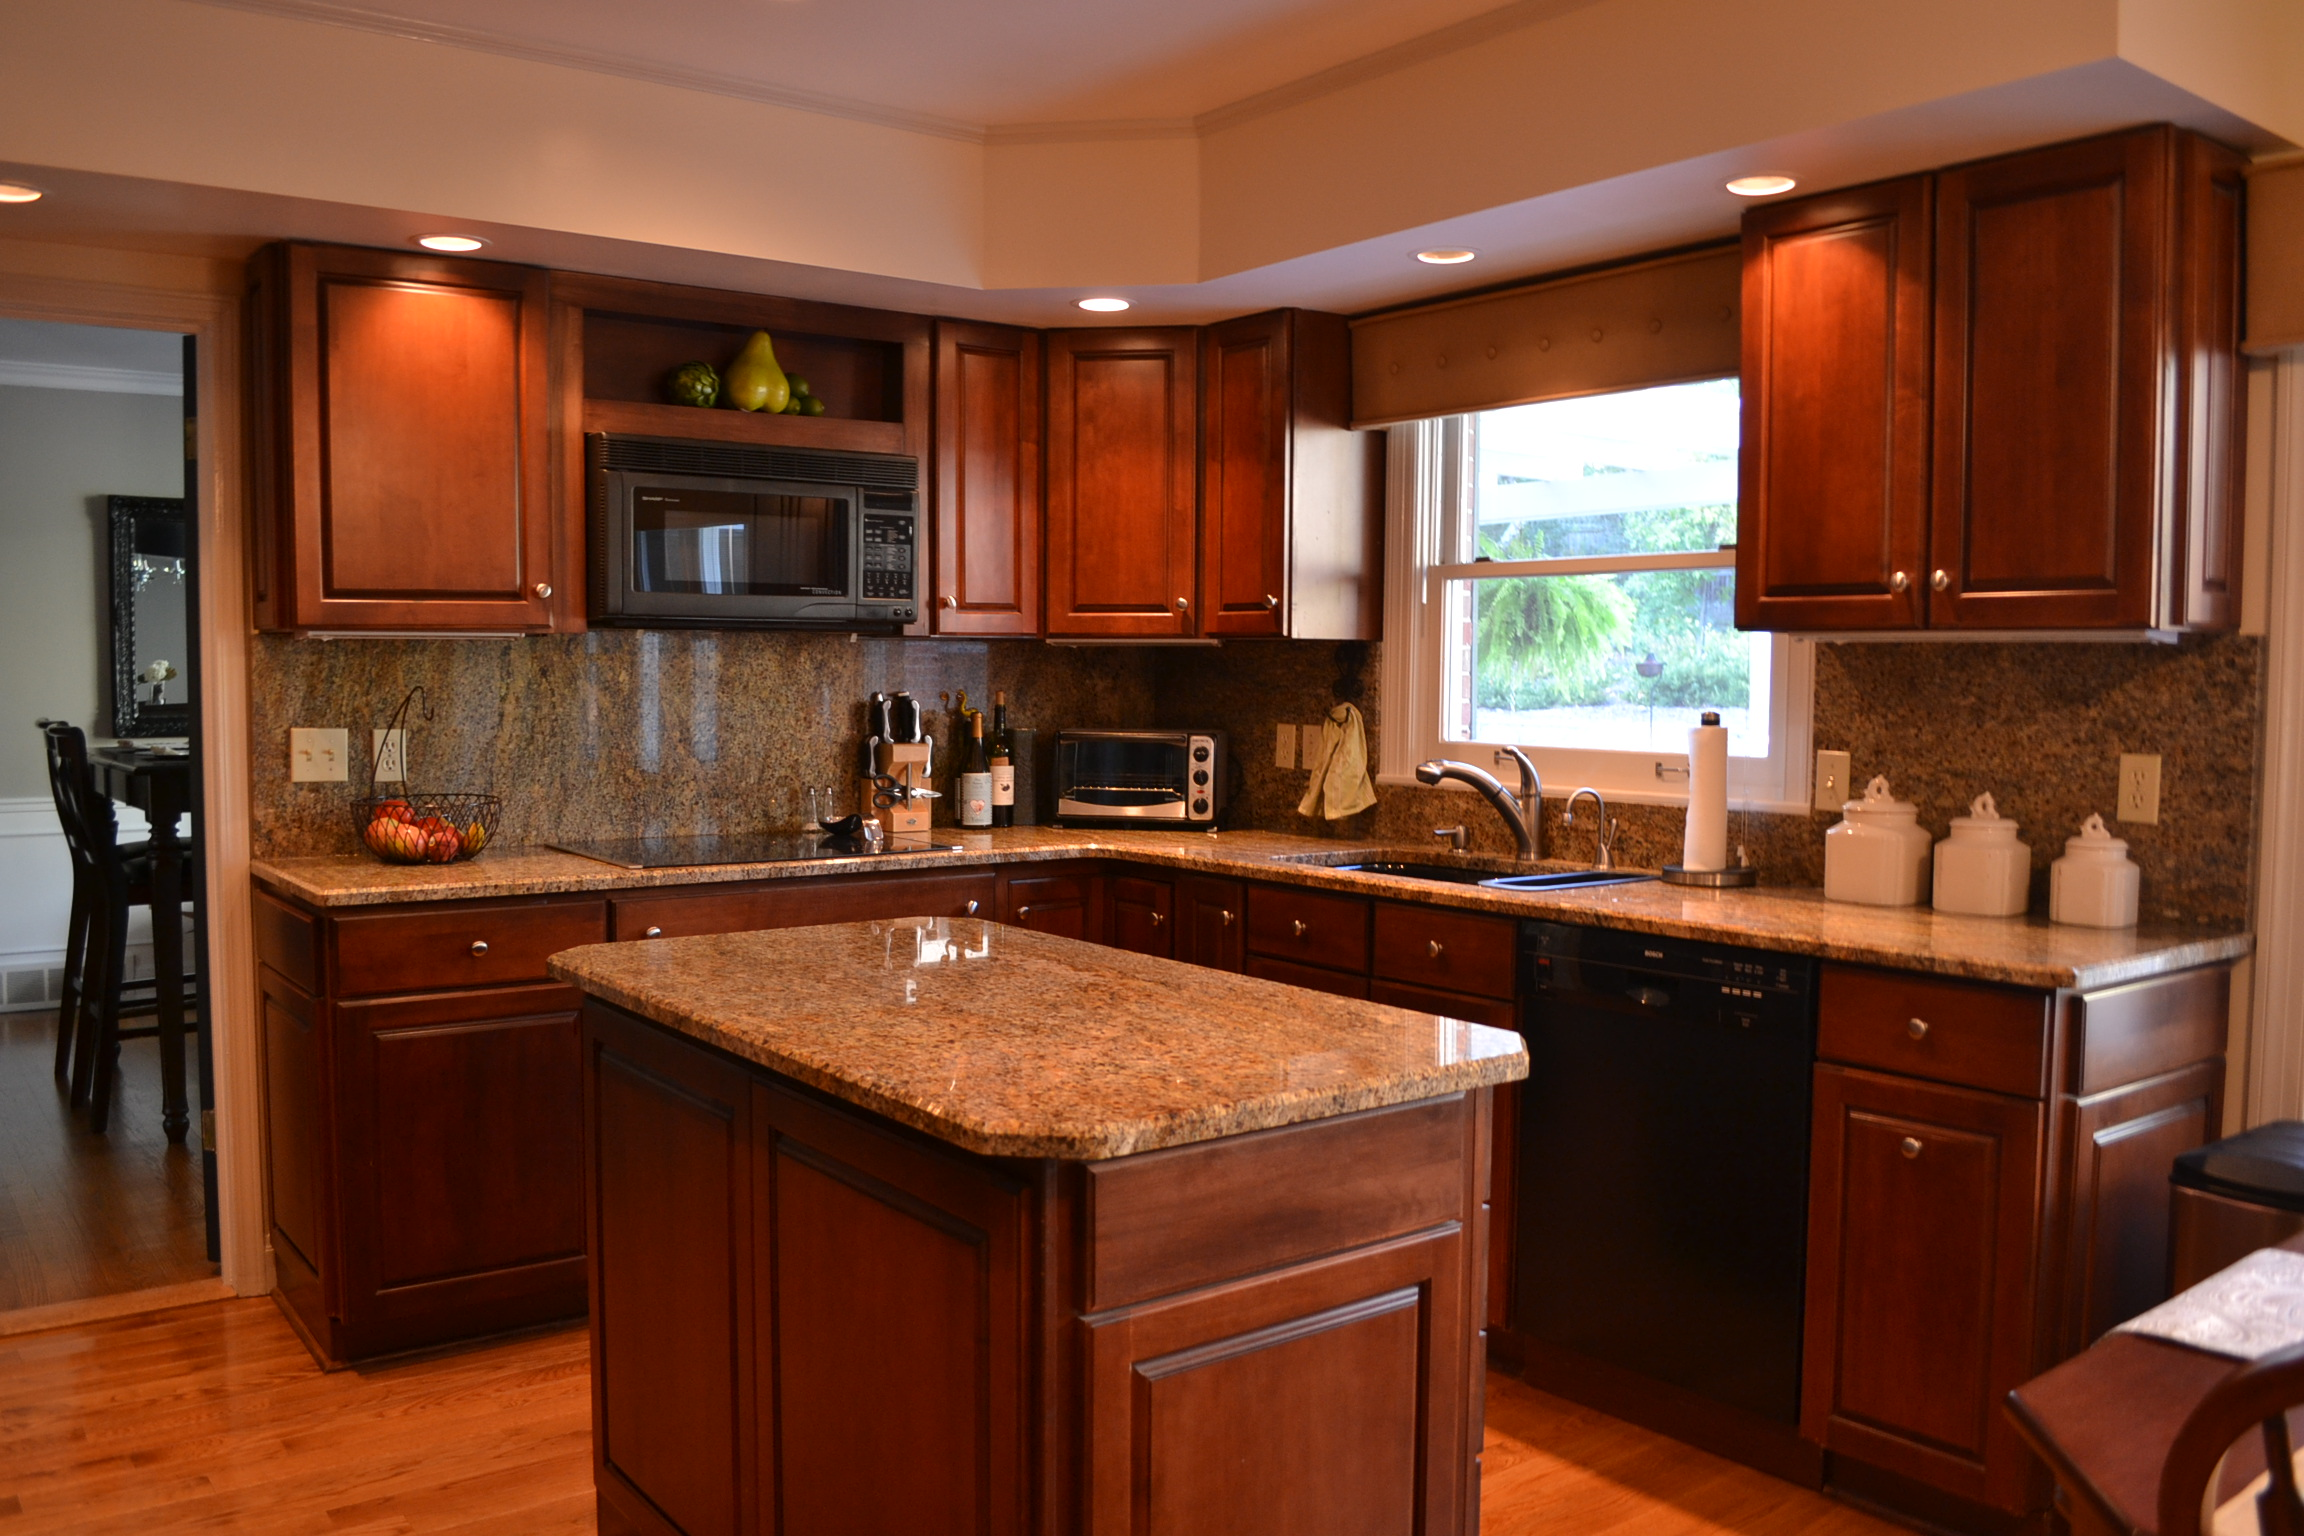 Dark Cabinet With Brown Color On ITs Kitchen Set